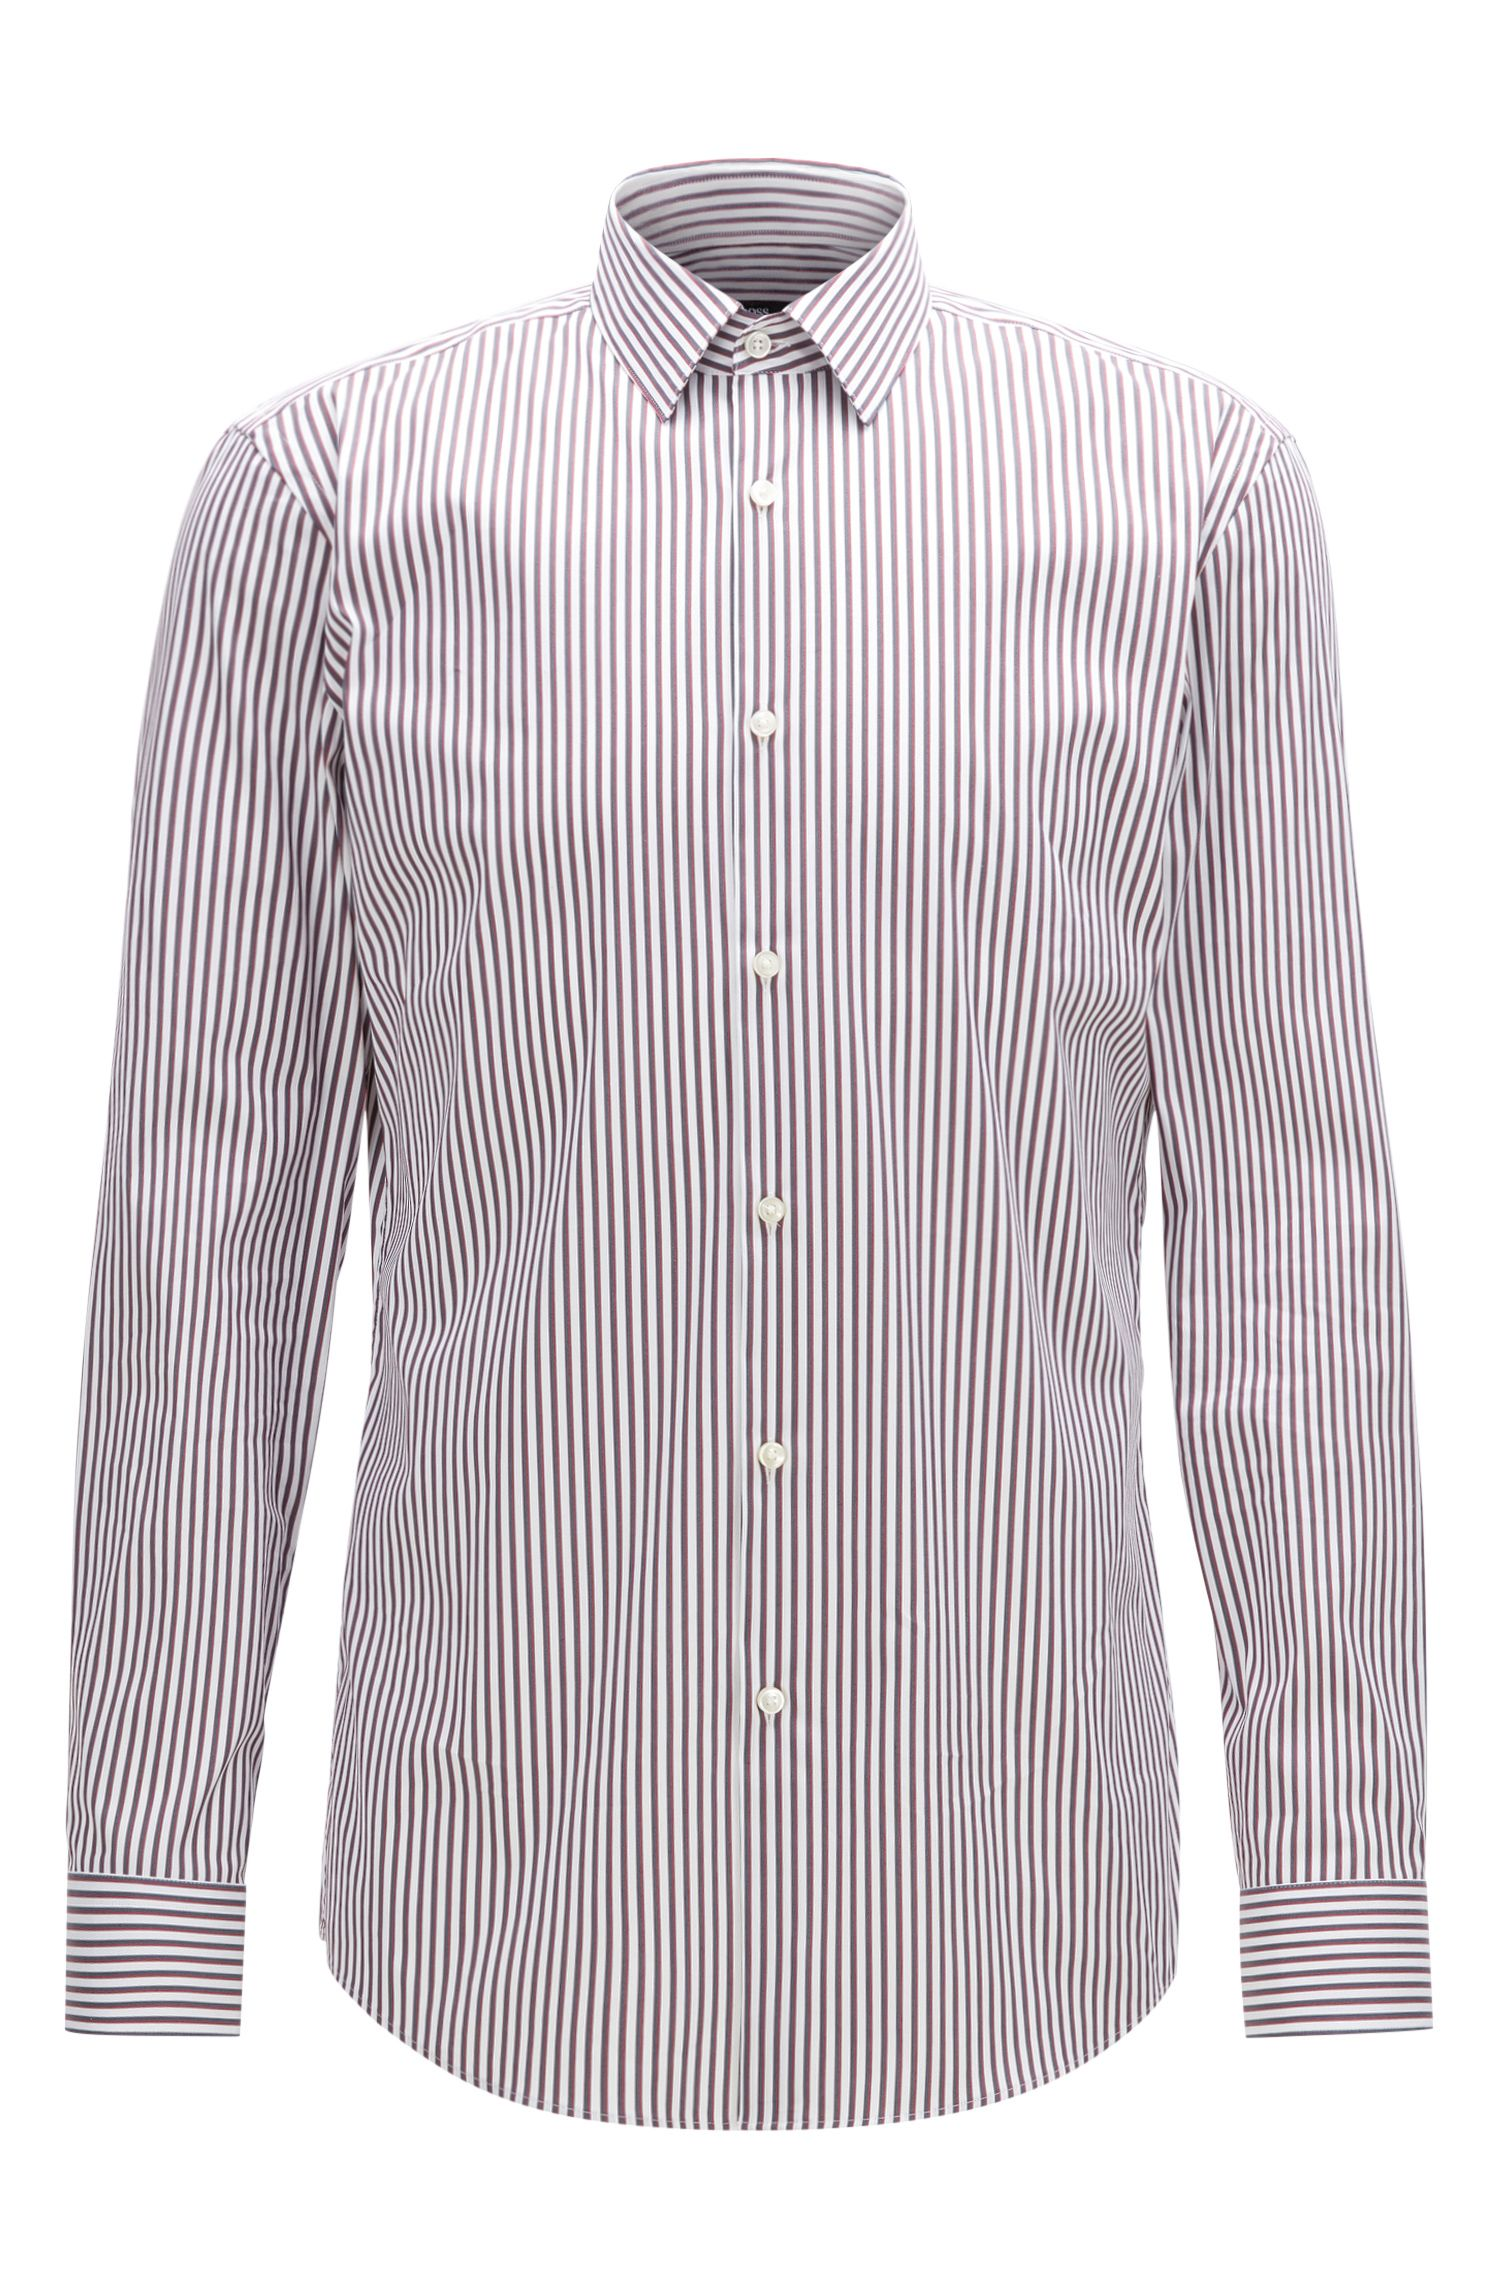 Striped Stretch Cotton Dress Shirt with Stretch Tailoring, Slim Fit | Isko